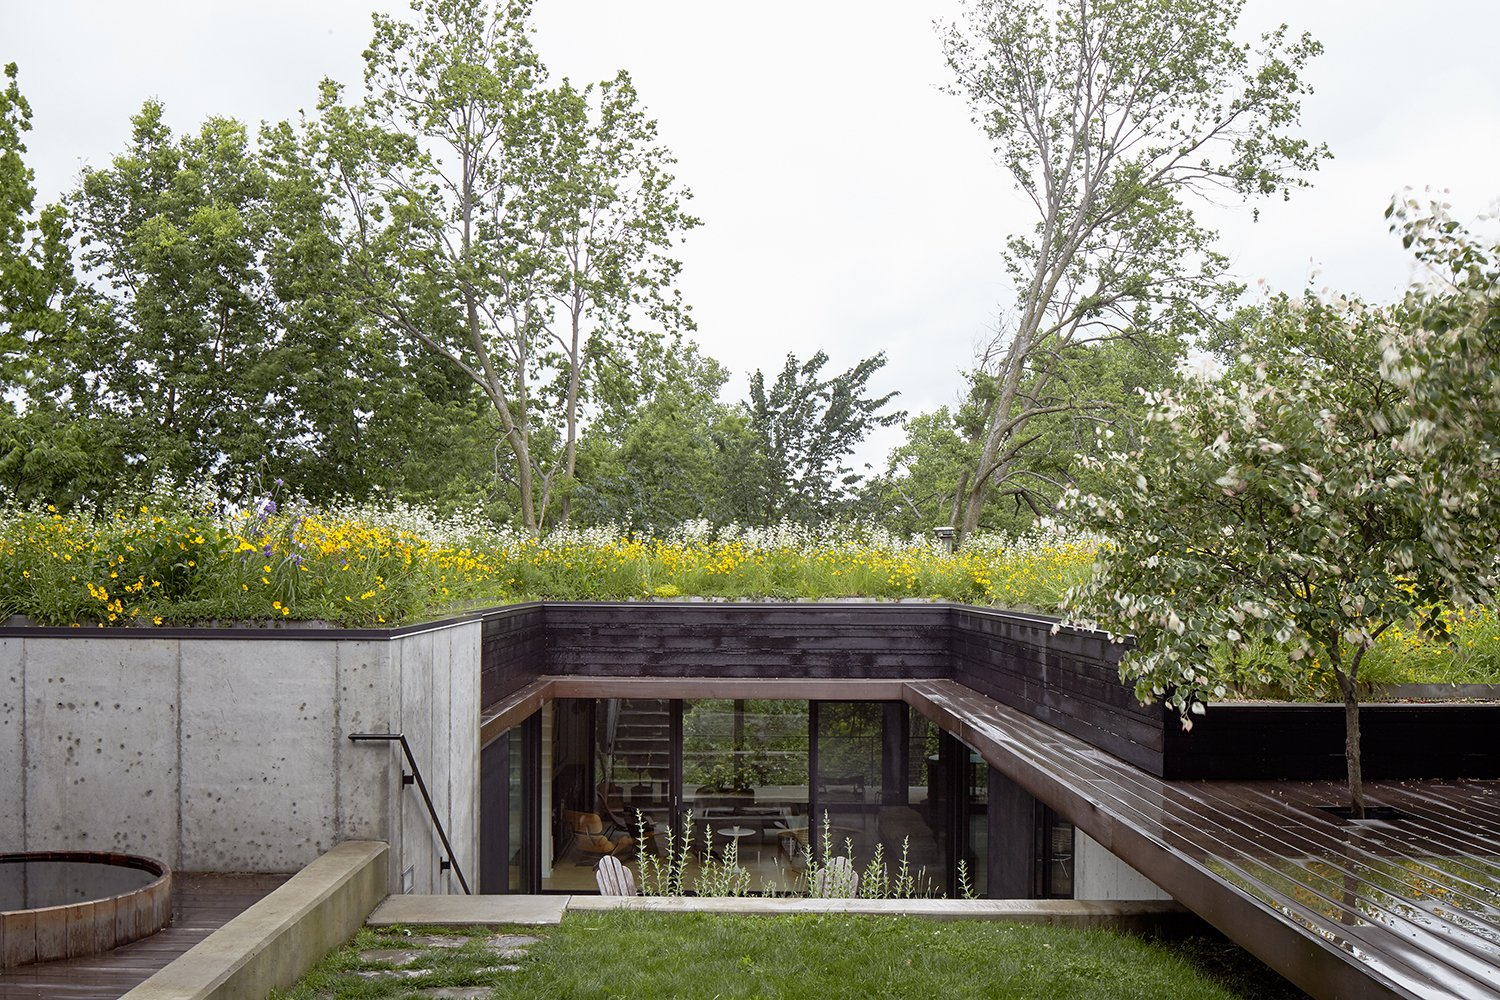 Stained cedar, ipe, and concrete form the 2,500-square-foot home's modern palette. Indigenous wildflowers and native grasses grow on top of the structure; this planted roof also helps insulate the home and limited its energy needs. Tagged: Grass, Small Patio, Porch, Deck, Rooftop, Wood Patio, Porch, Deck, Exterior, Green Roof Material, Concrete Siding Material, and Wood Siding Material.  outdoors by Laura McLaughlin from Nature Reigns Supreme at a Verdant Kansas City Home